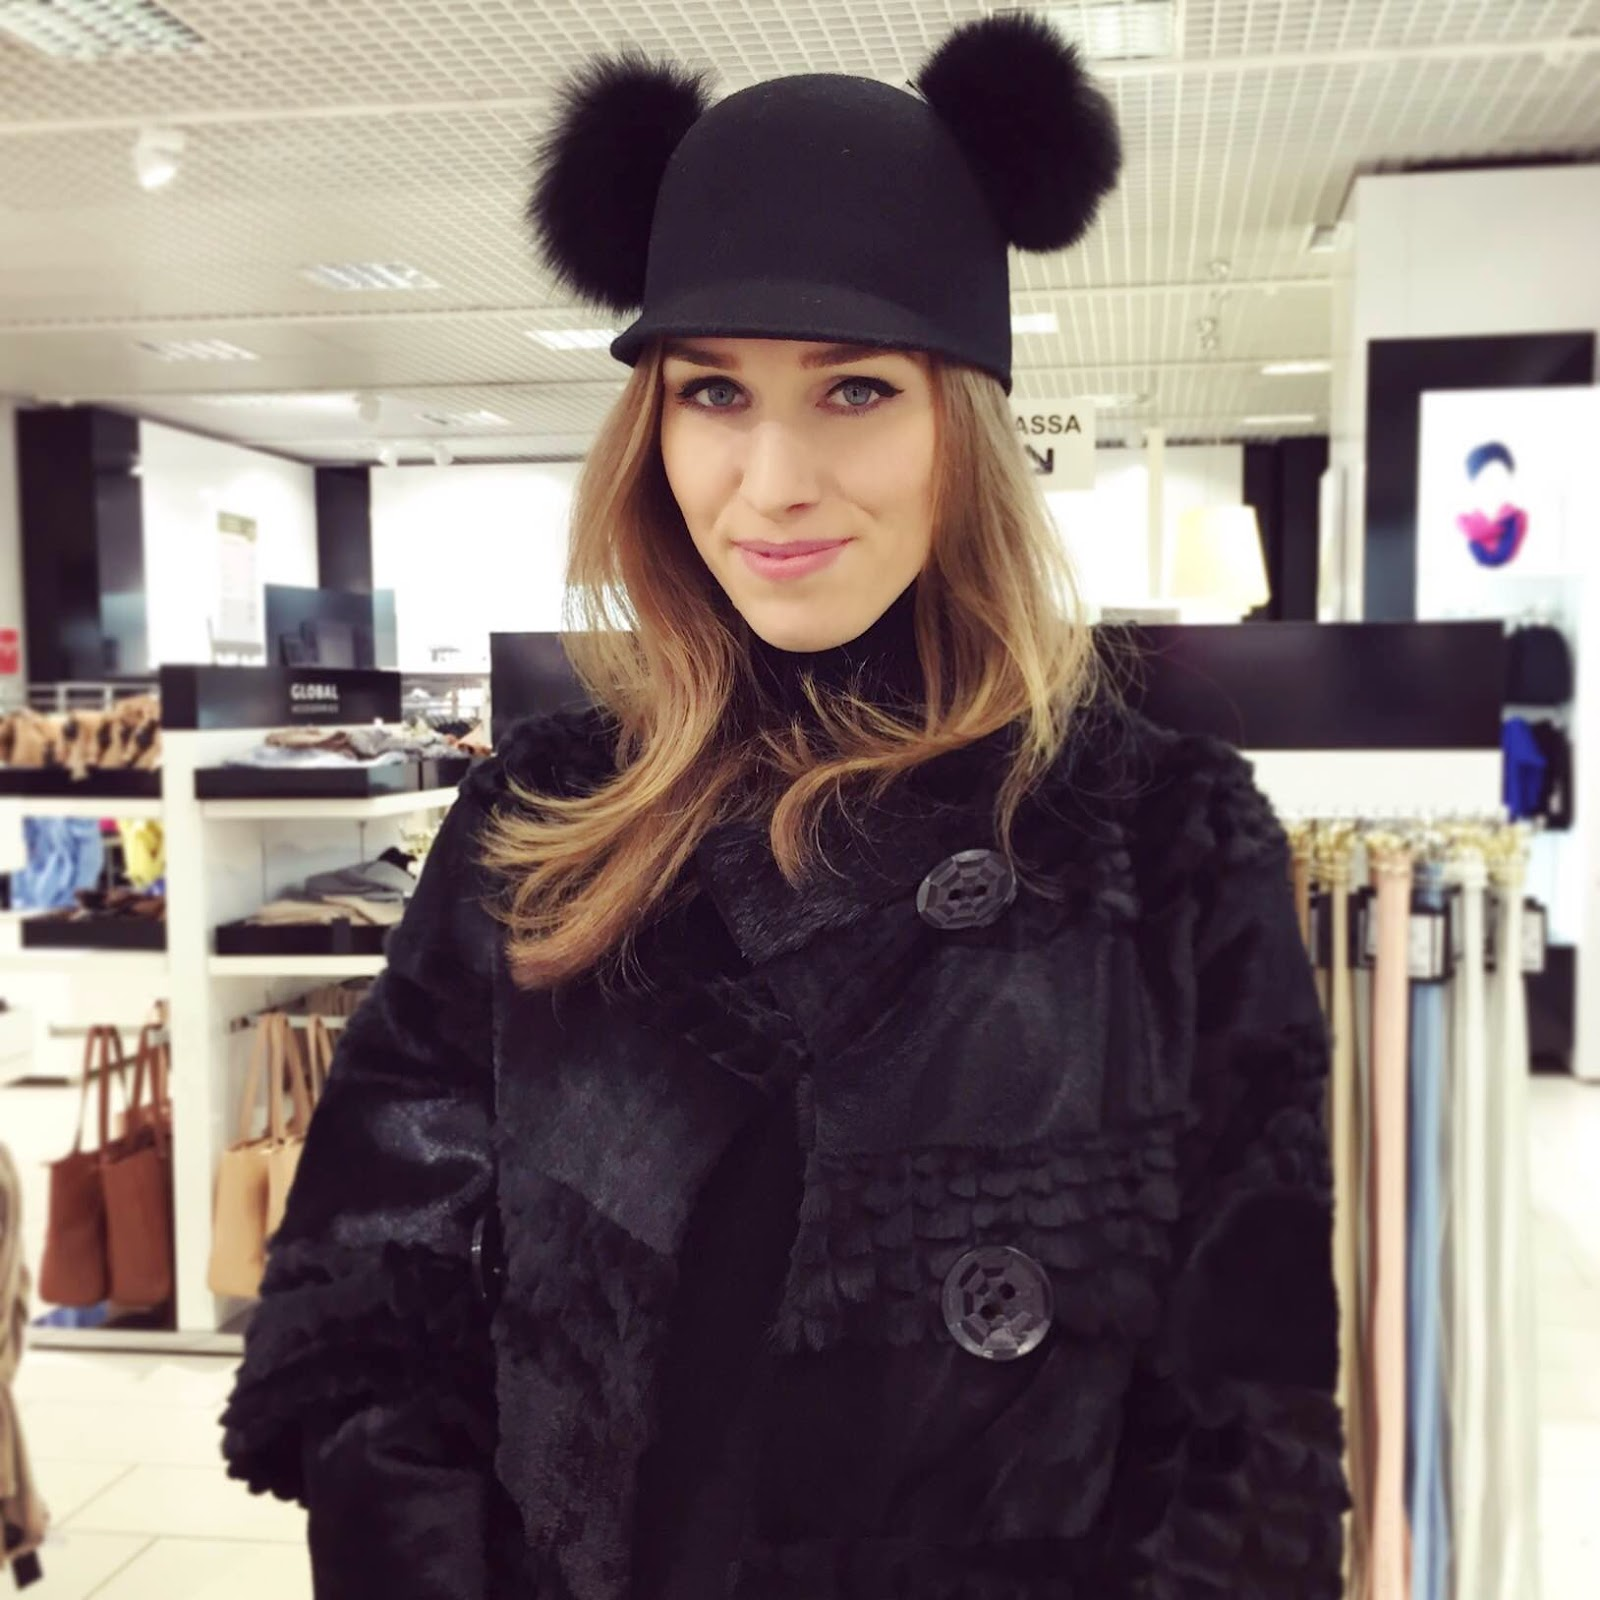 mickey-mouse-fur-hat-black-fur-coat